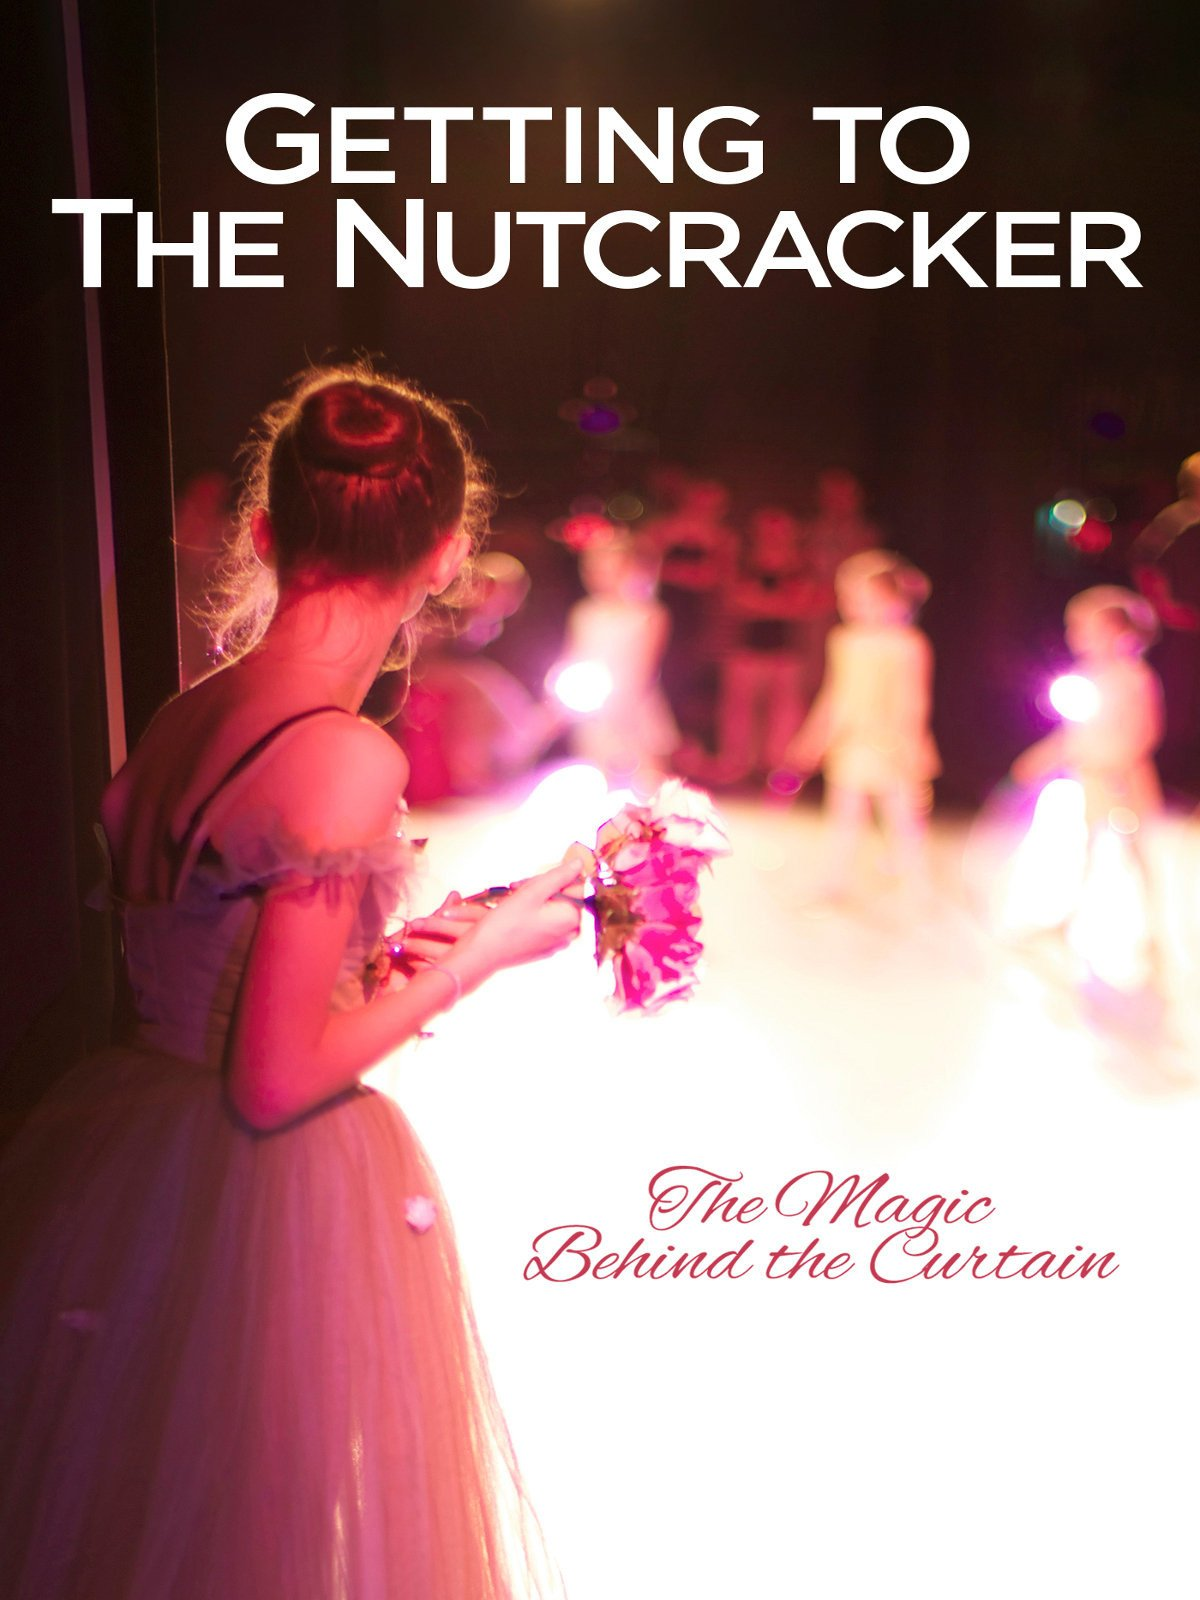 Getting to the Nutcracker